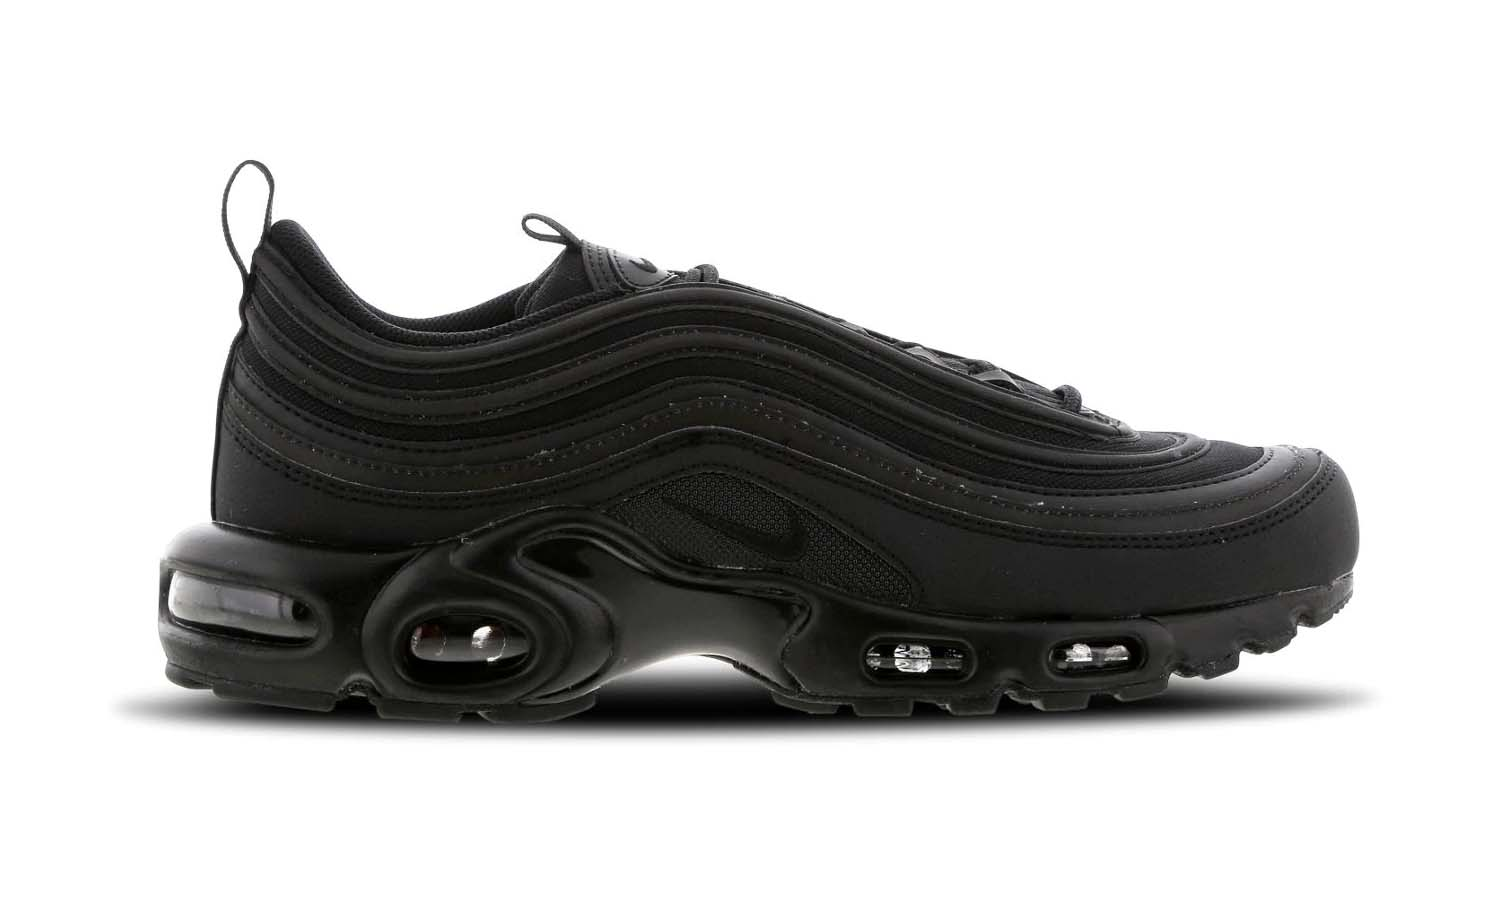 The Nike Air Max Plus 97 Triple Black Is The Ultimate Hybrid